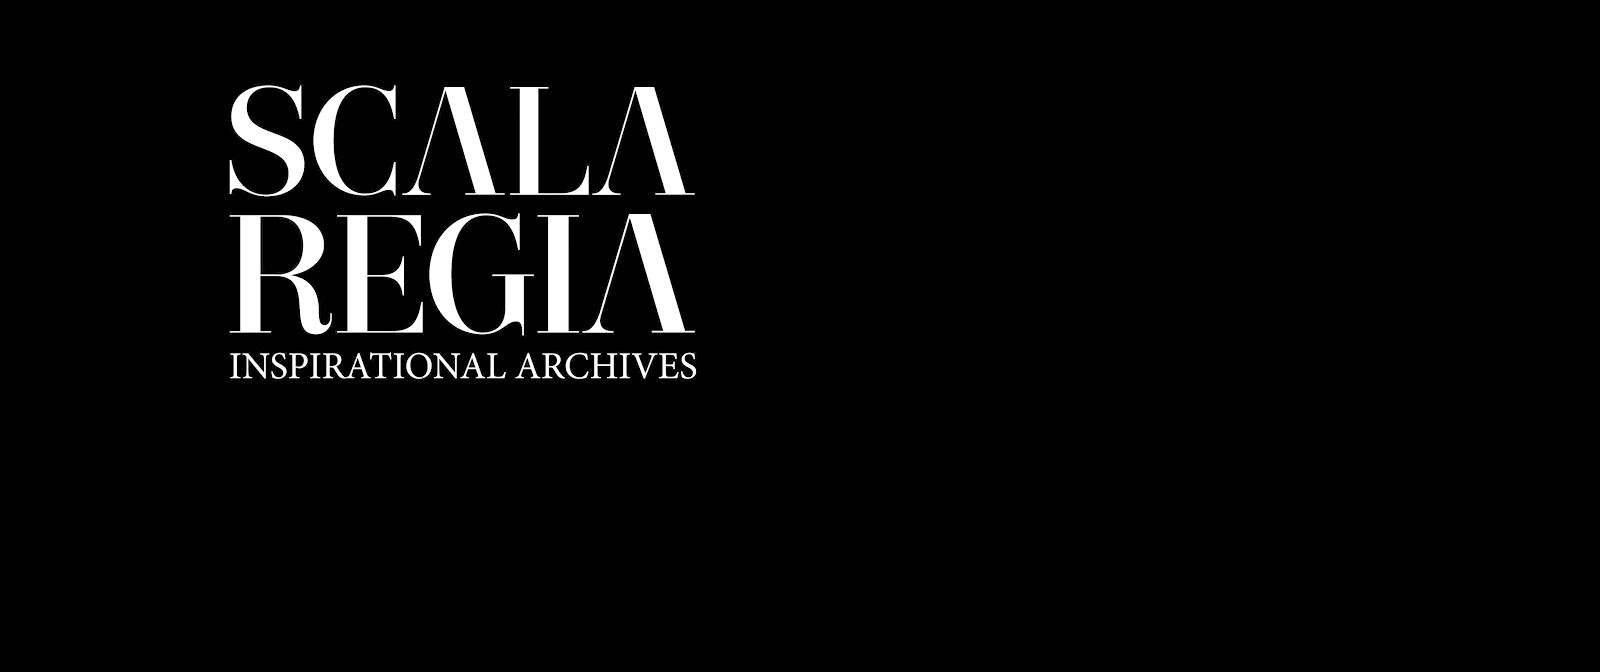 Scala Regia Inspirational Archives